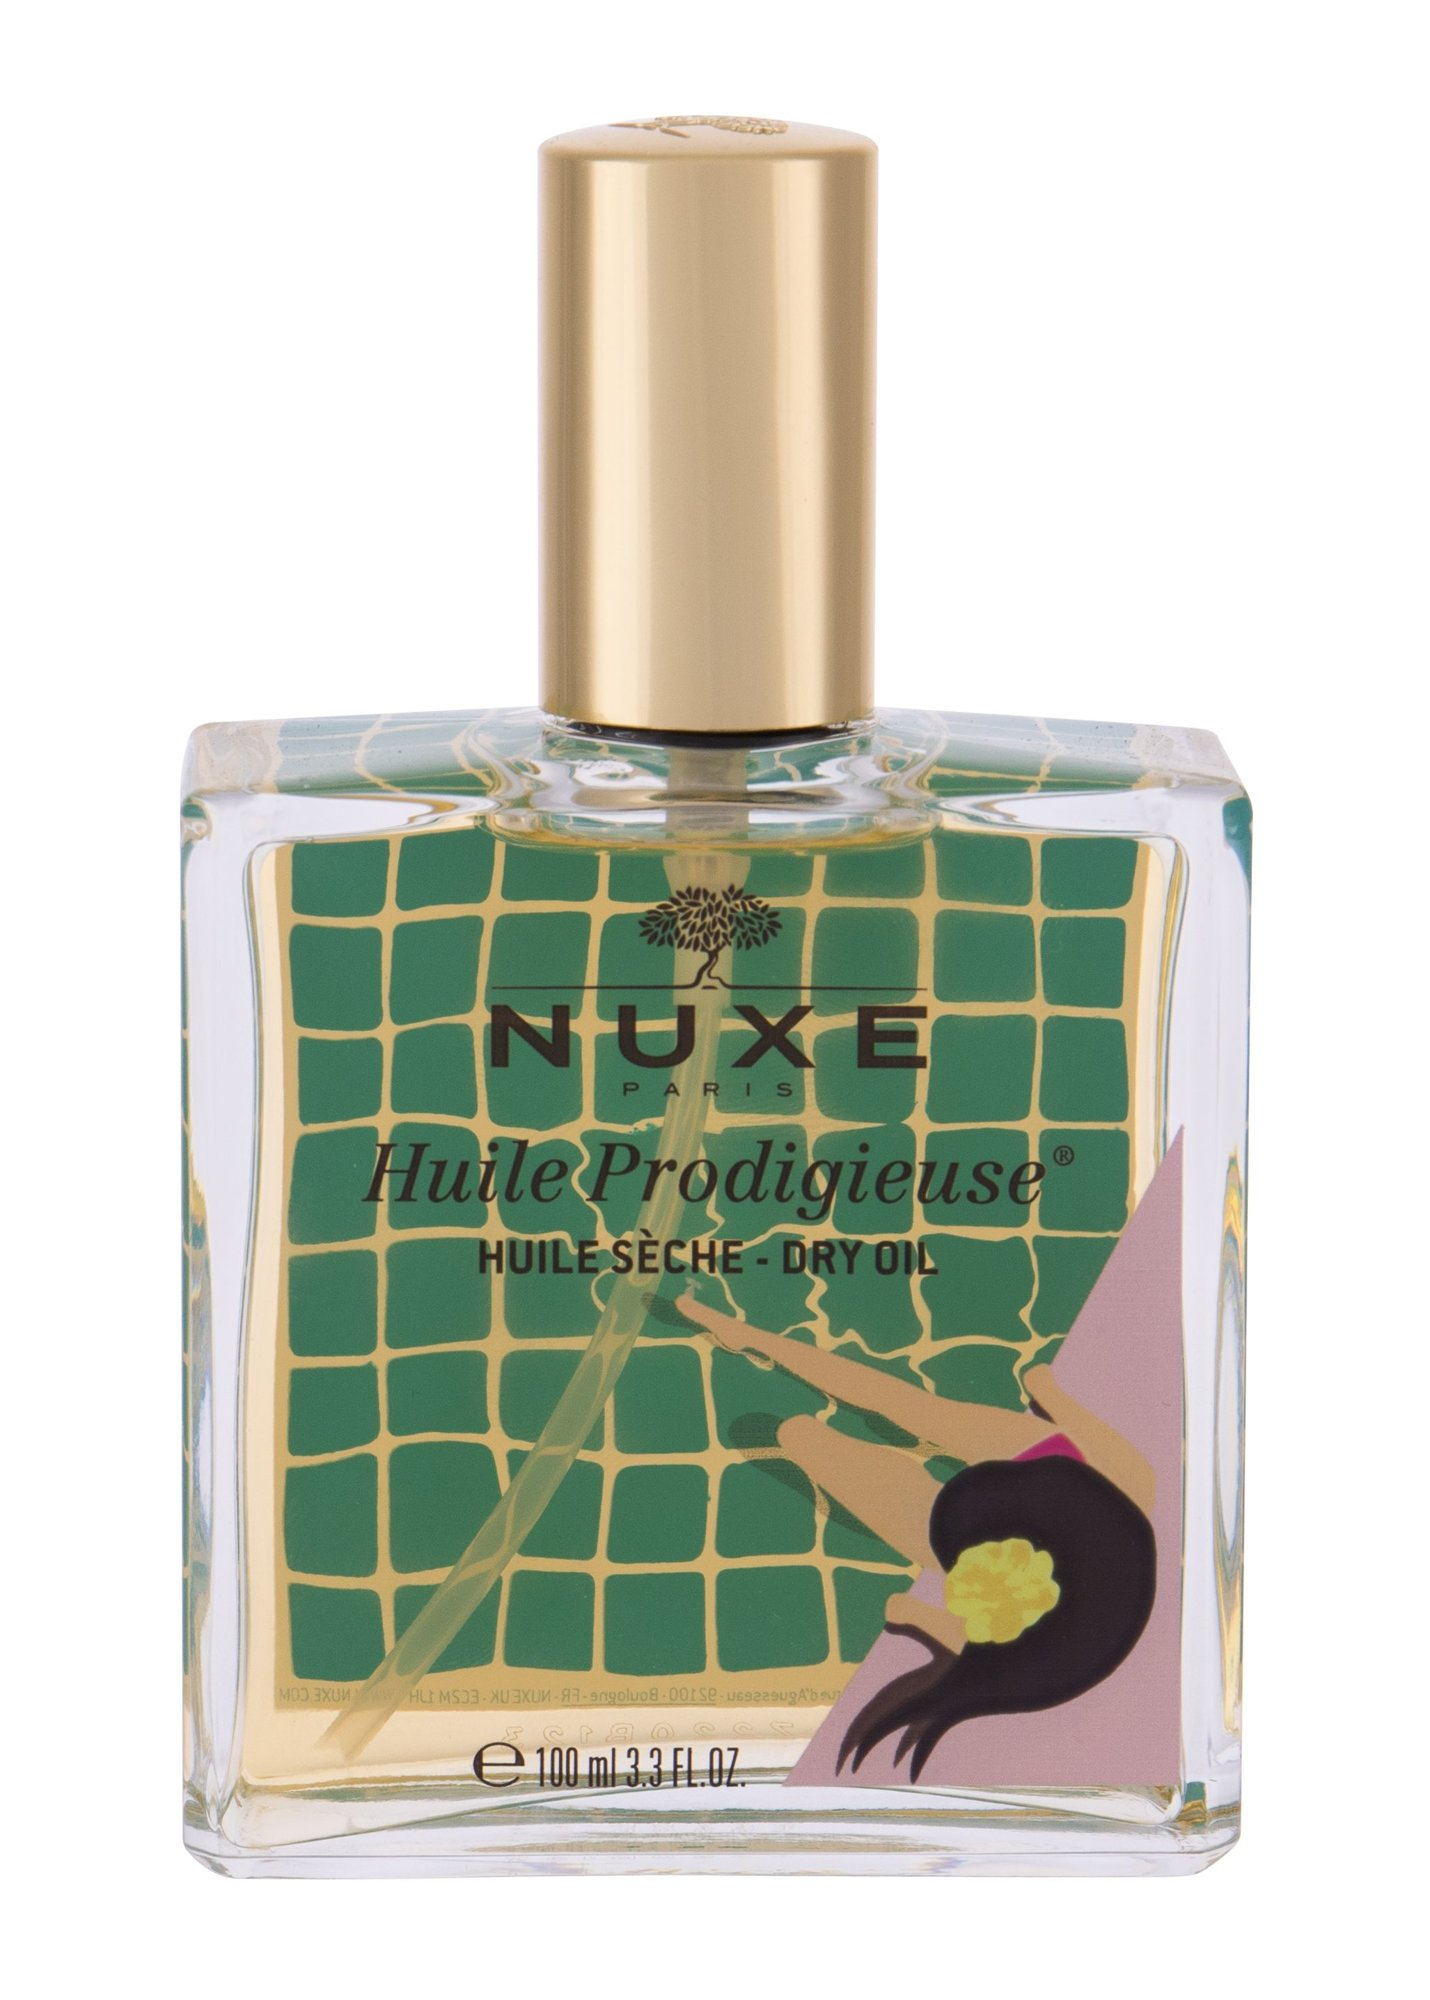 NUXE Huile Prodigieuse Limited Edition, Testápoló olaj 100ml - Multi-Purpose Dry Oil